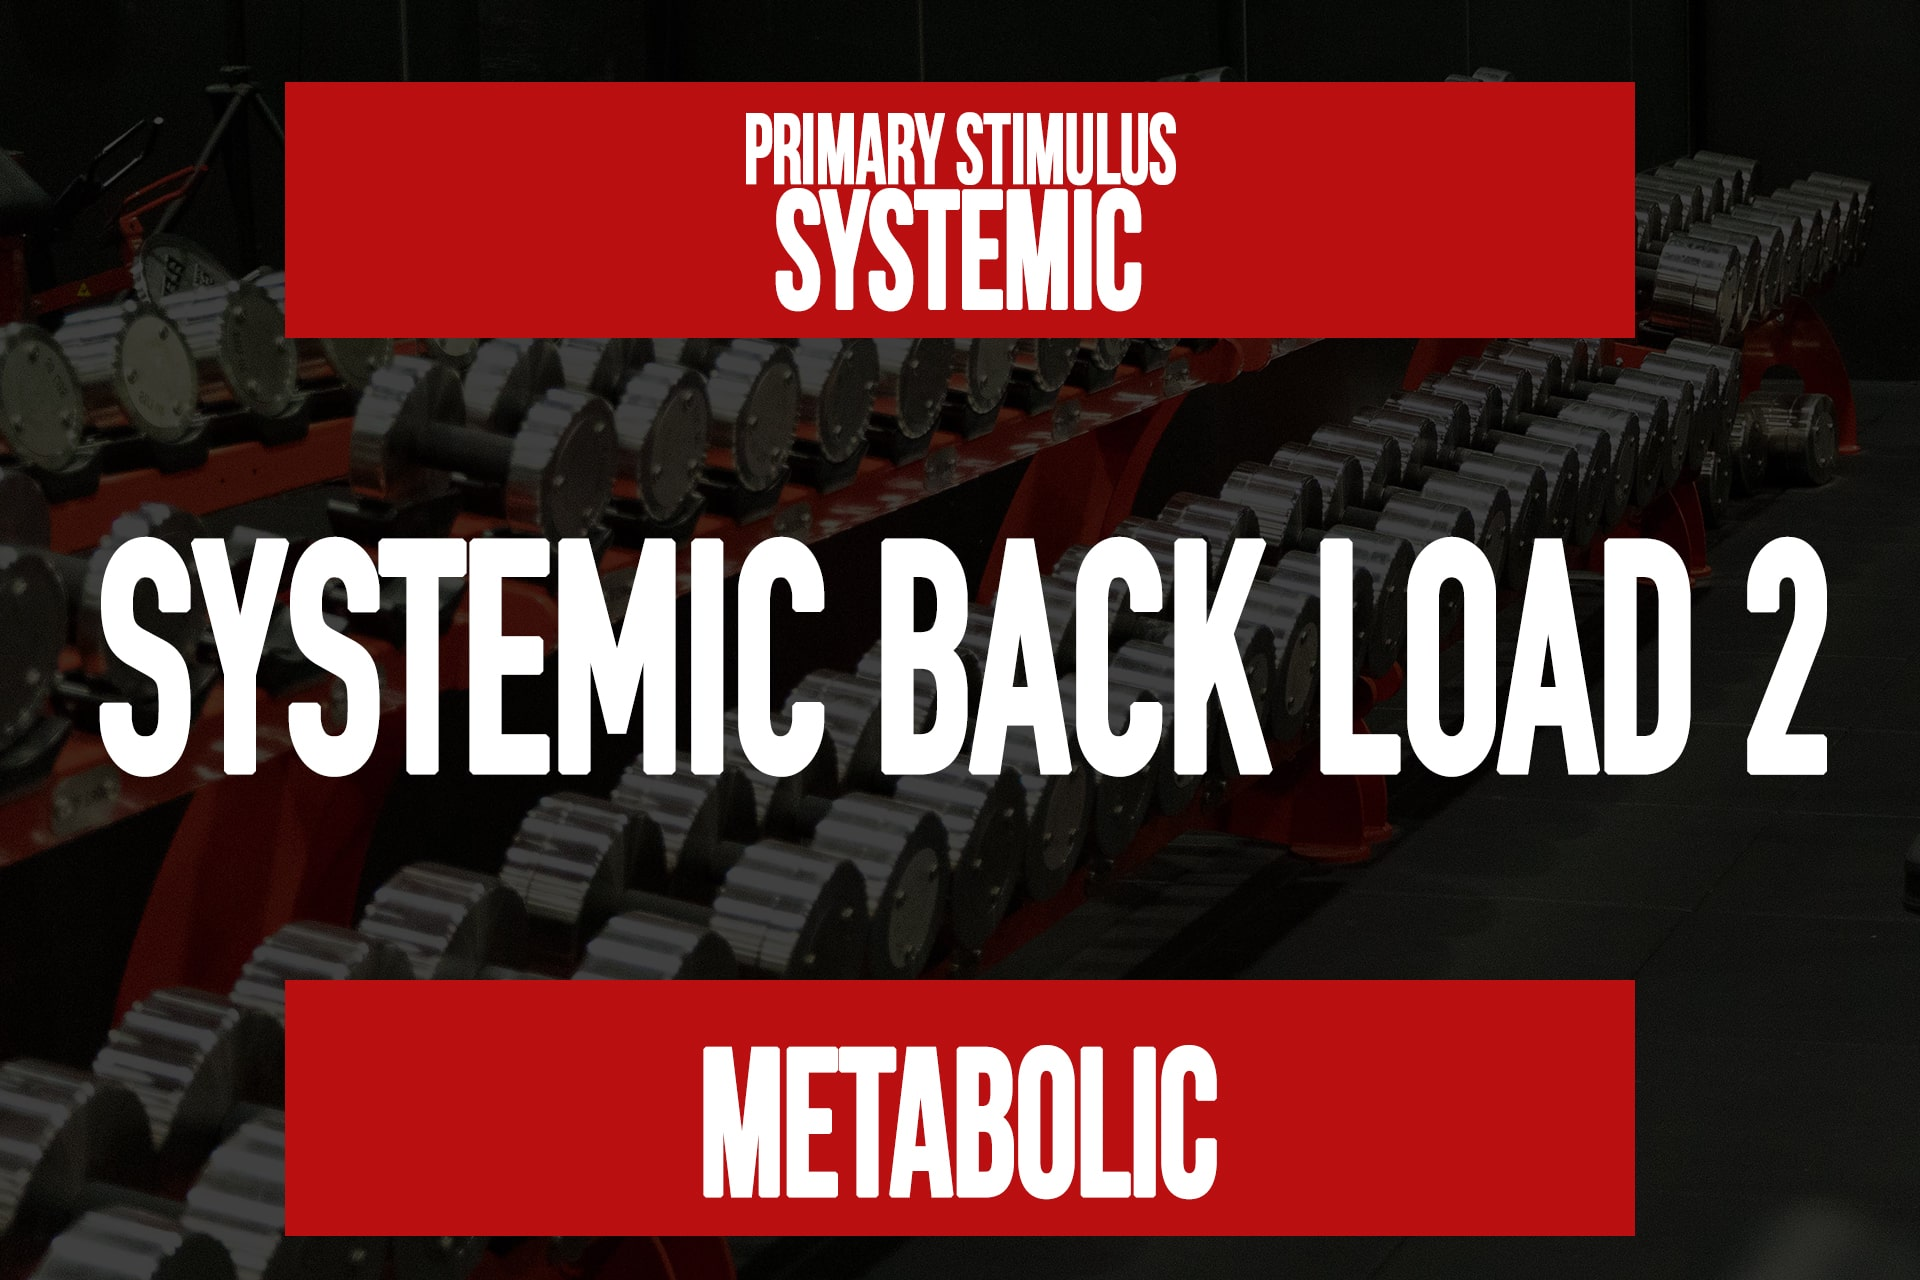 Systemic Back Load 2